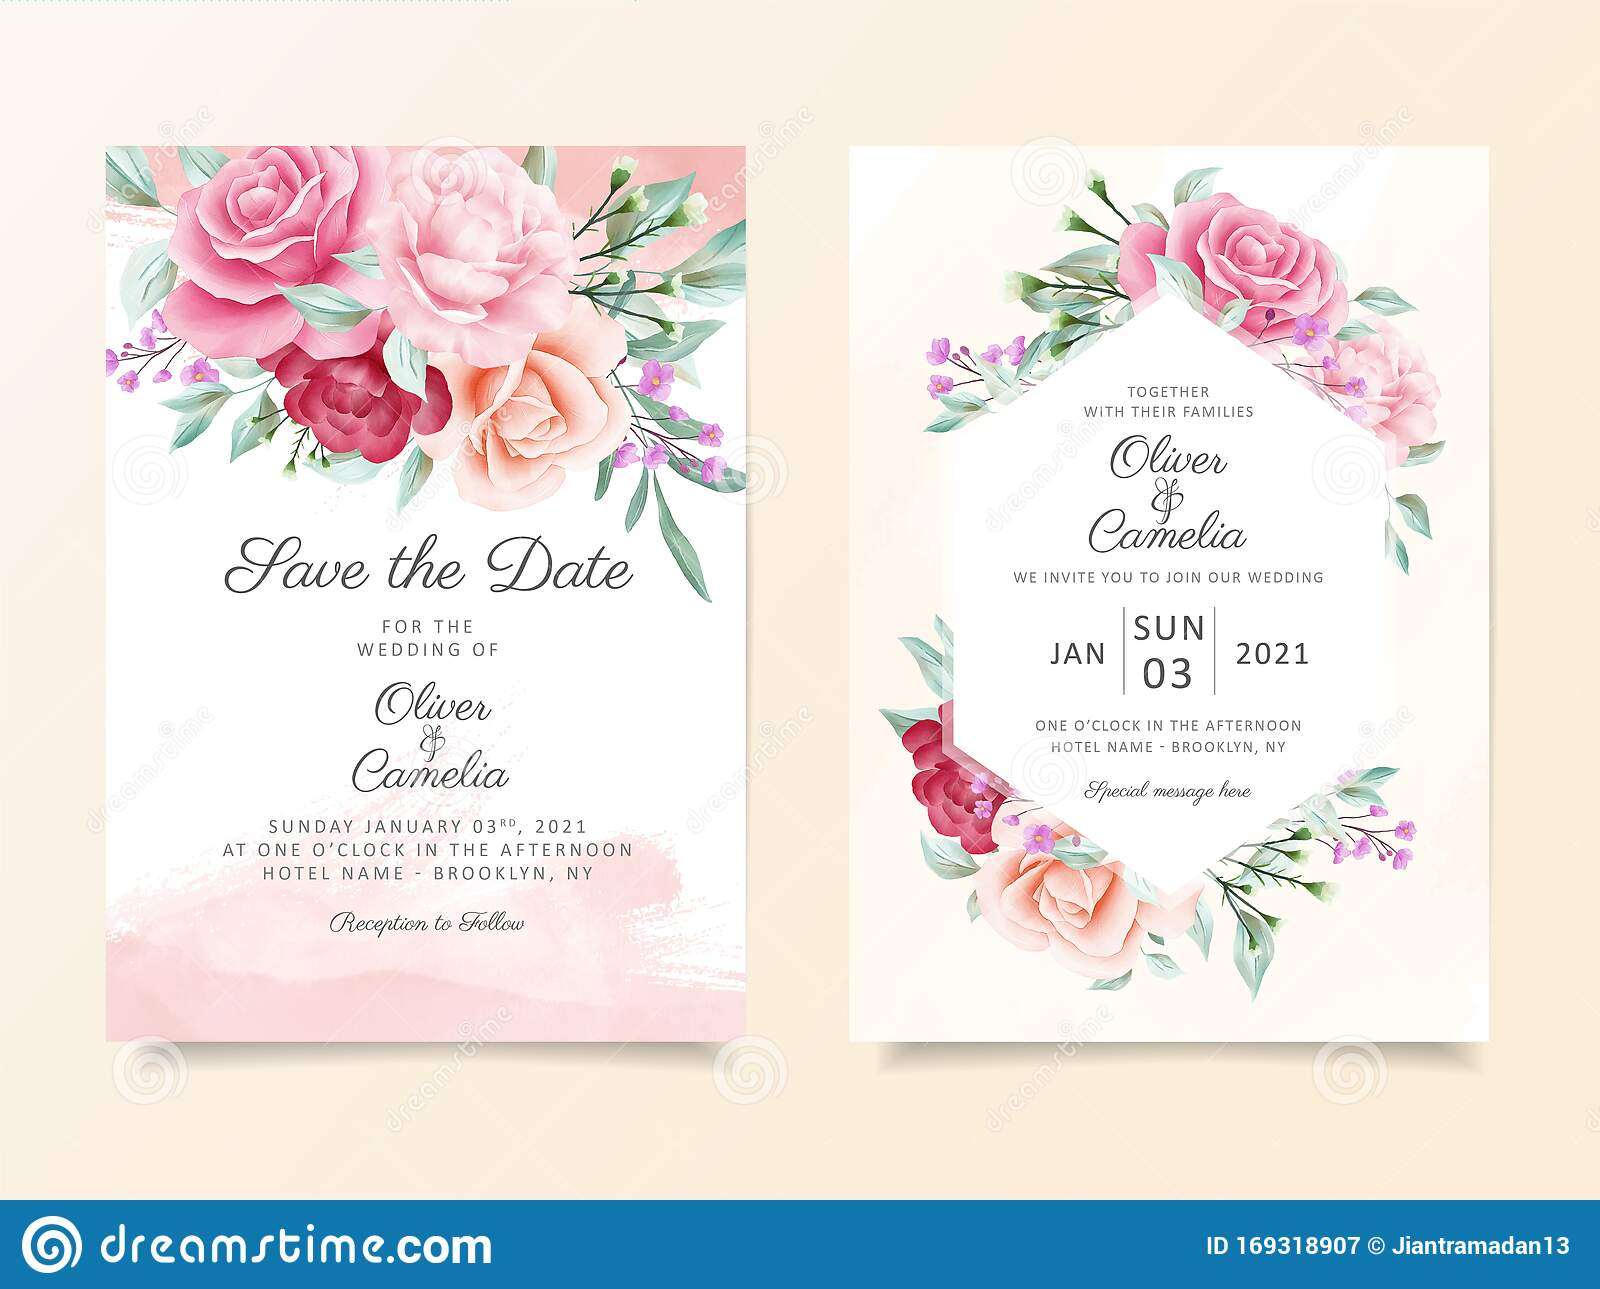 Elegant Wedding Invitation Card Template Set With Soft Watercolor Flowers Decoration Floral Illustration Background Of Peach Stock Vector Illustration Of Border Garden 169318907